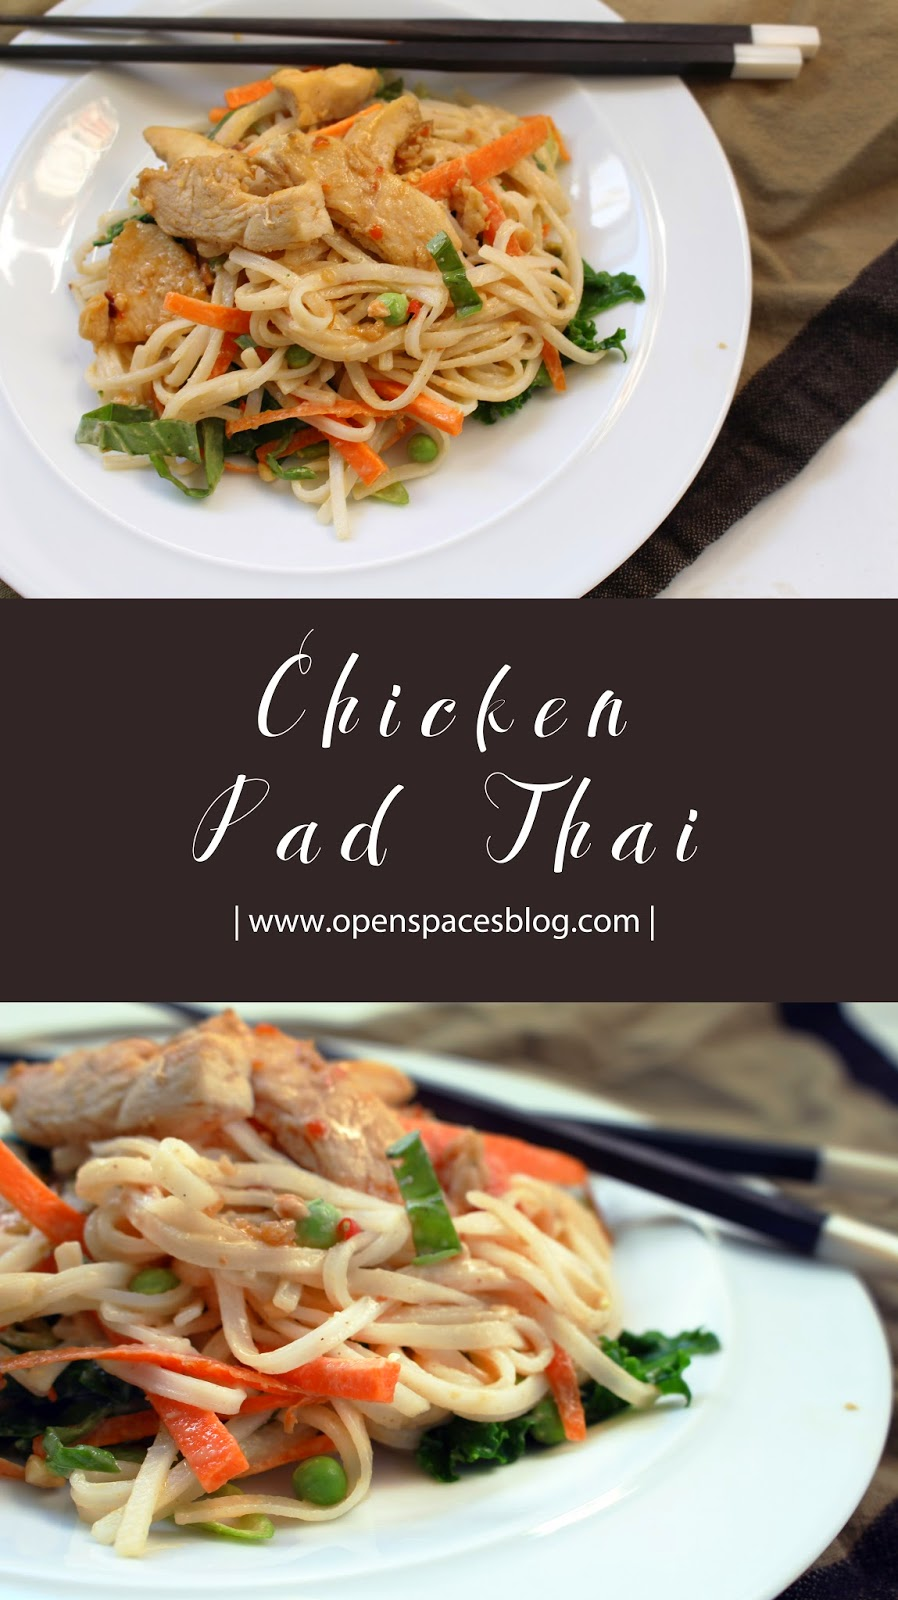 Kendra Castillo: Simple Chicken Pad Thai Recipe